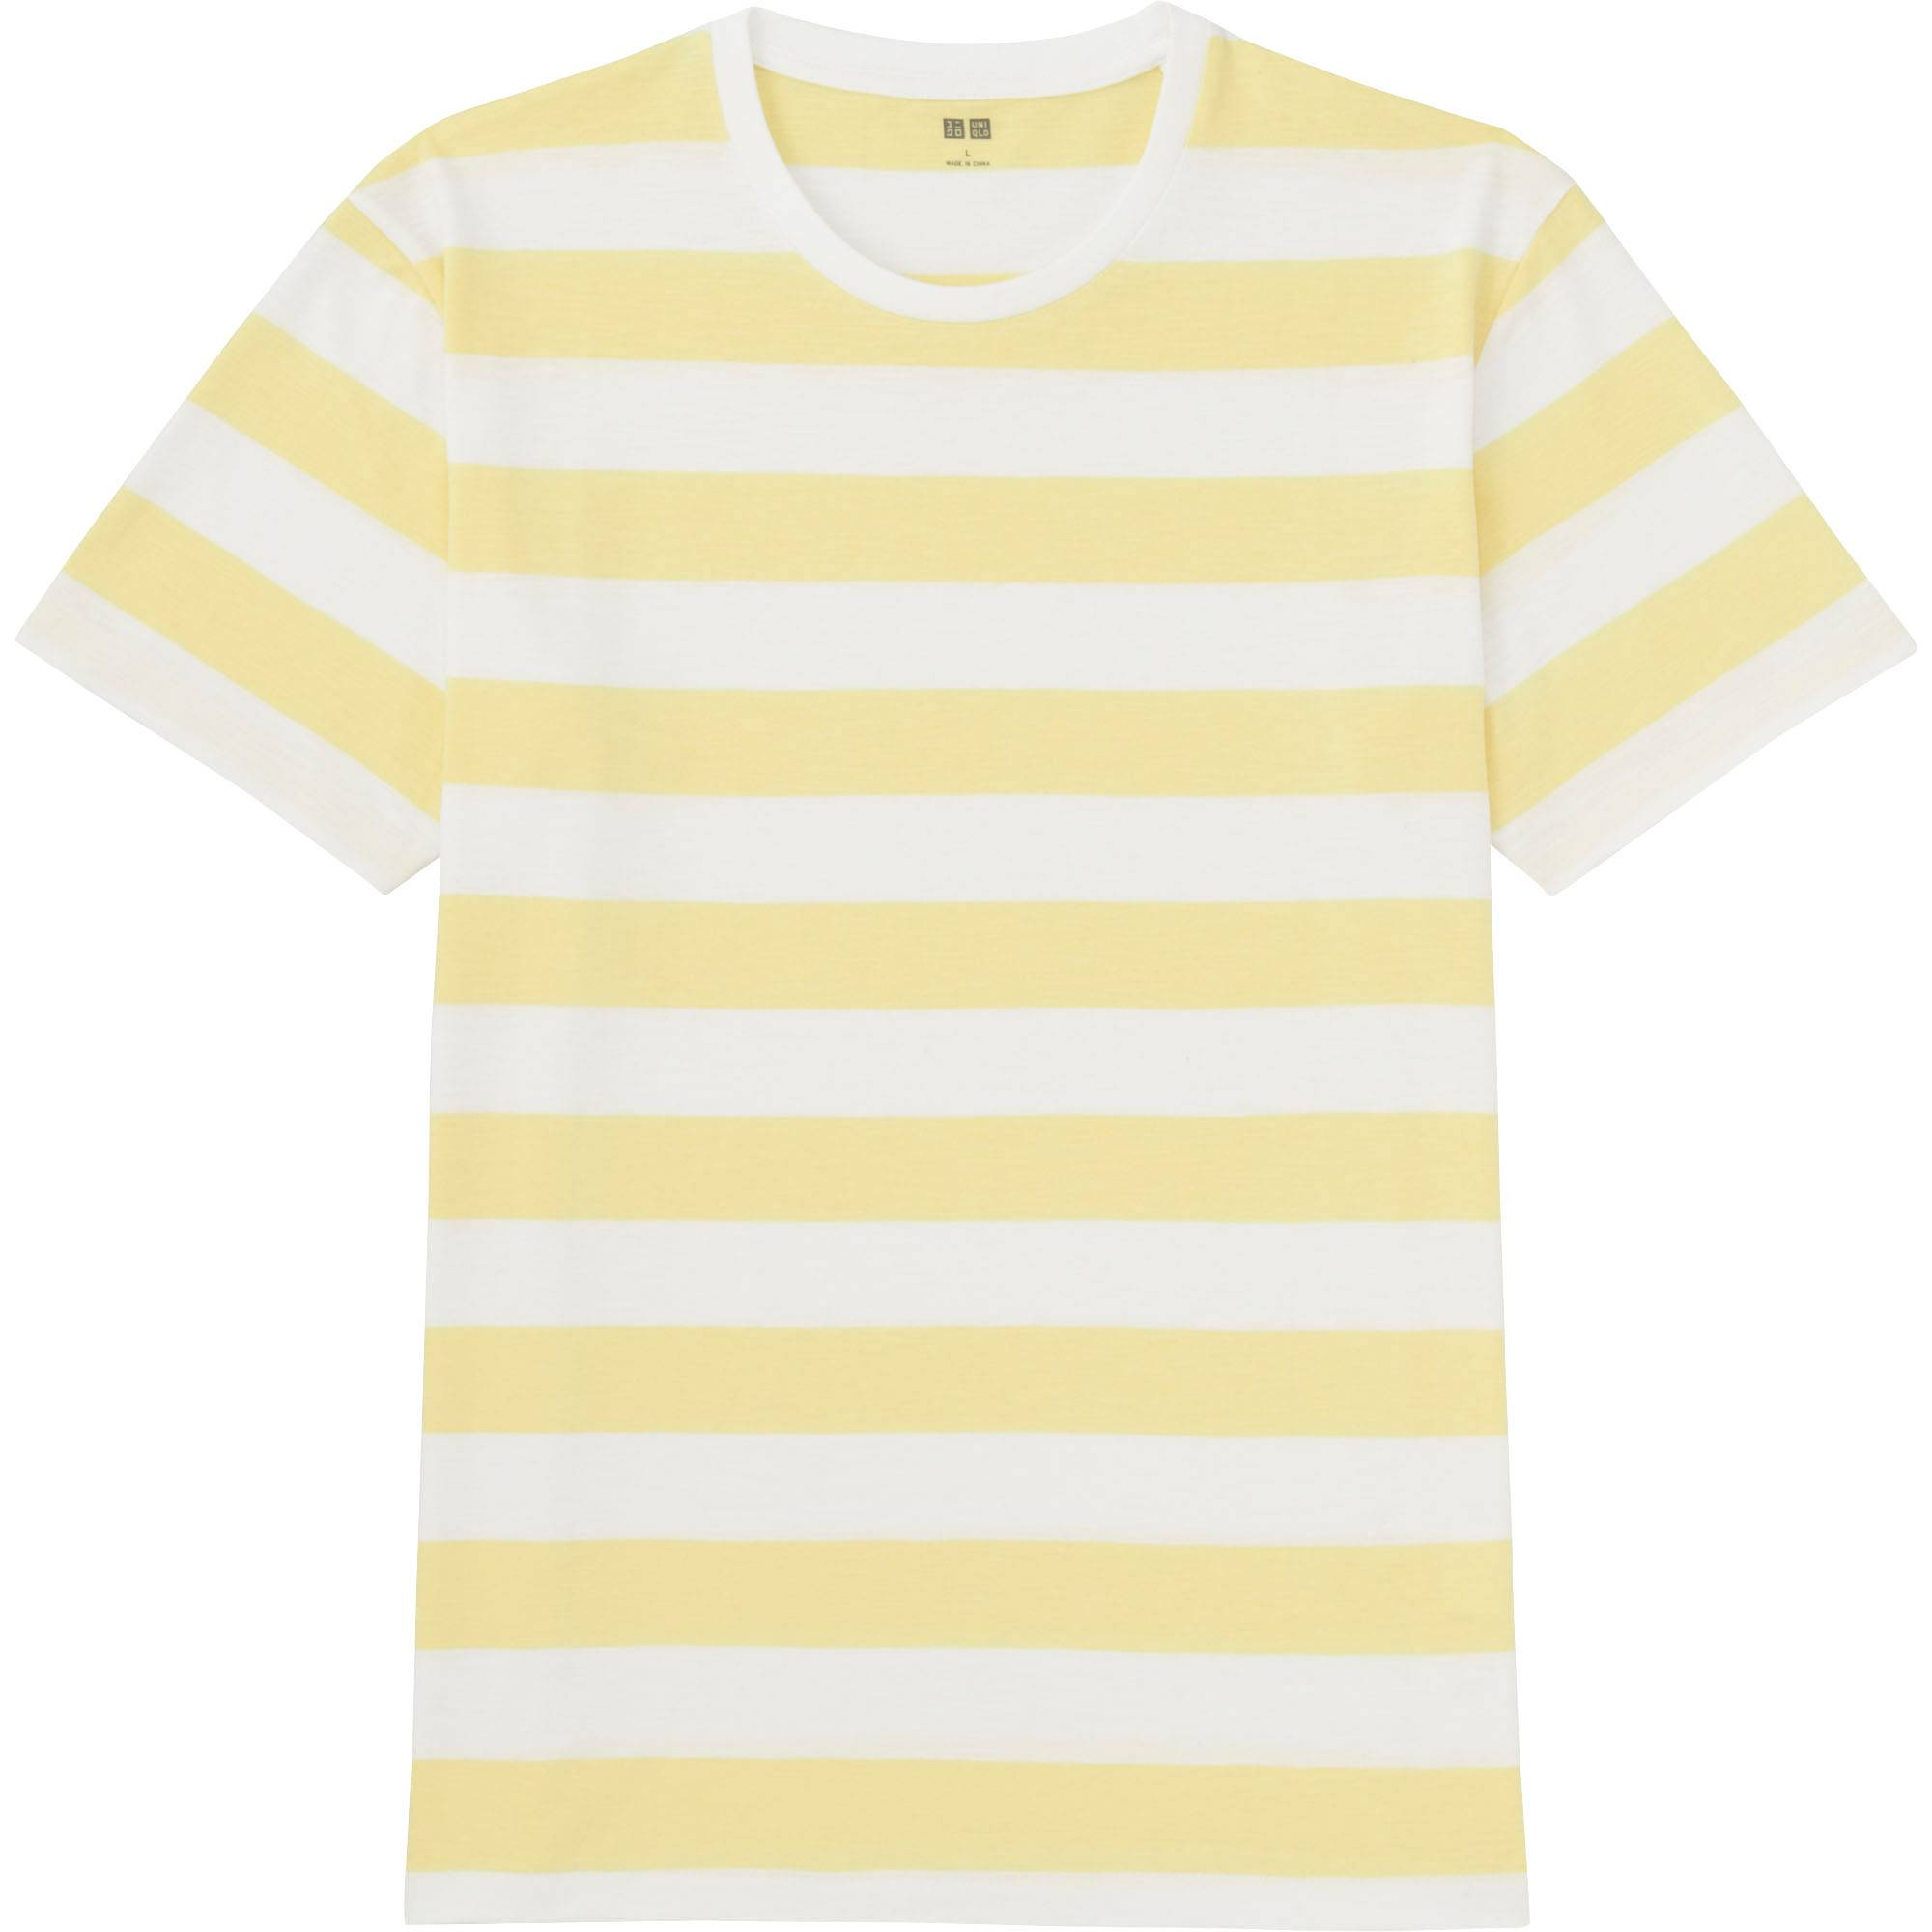 Yellow And White Striped Shirt South Park T Shirts